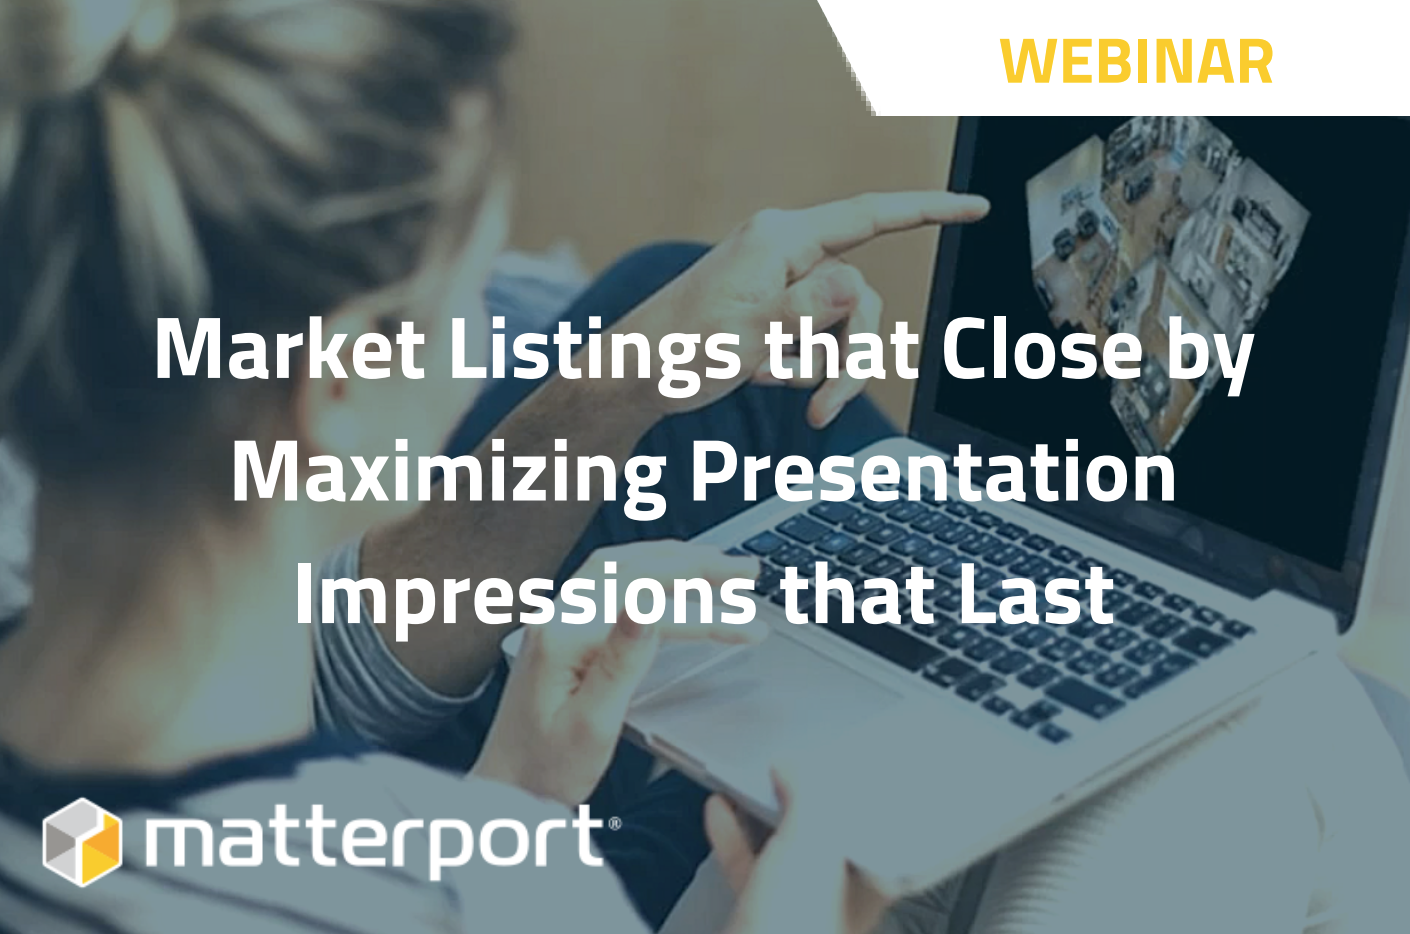 How to Market Listings that Close by Maximizing Presentation Impressions that Last